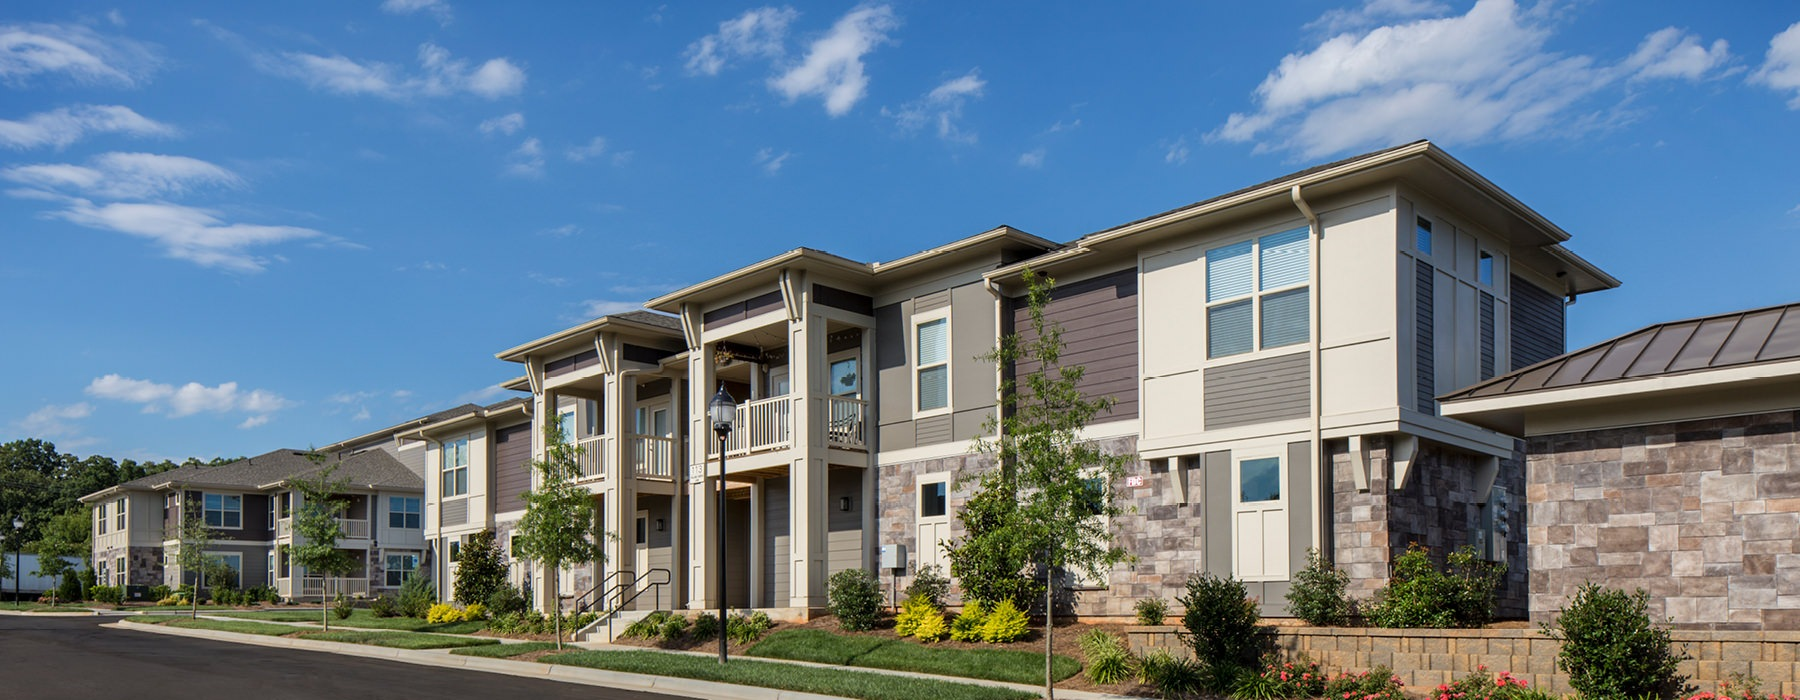 Legacy Village is a two-story apartment complex